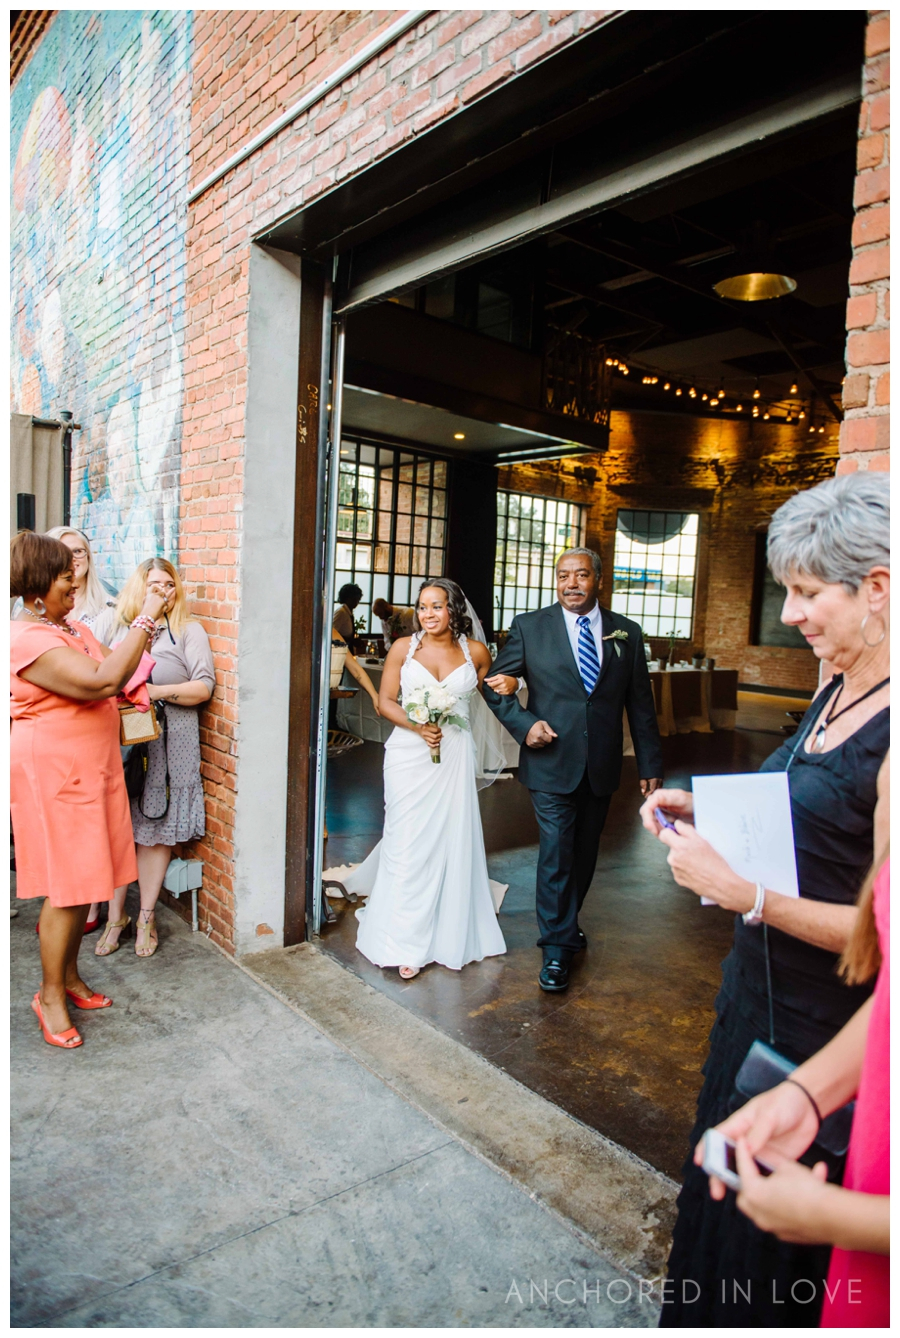 Make your entrance through our rolling garage door and host your ceremony outside!